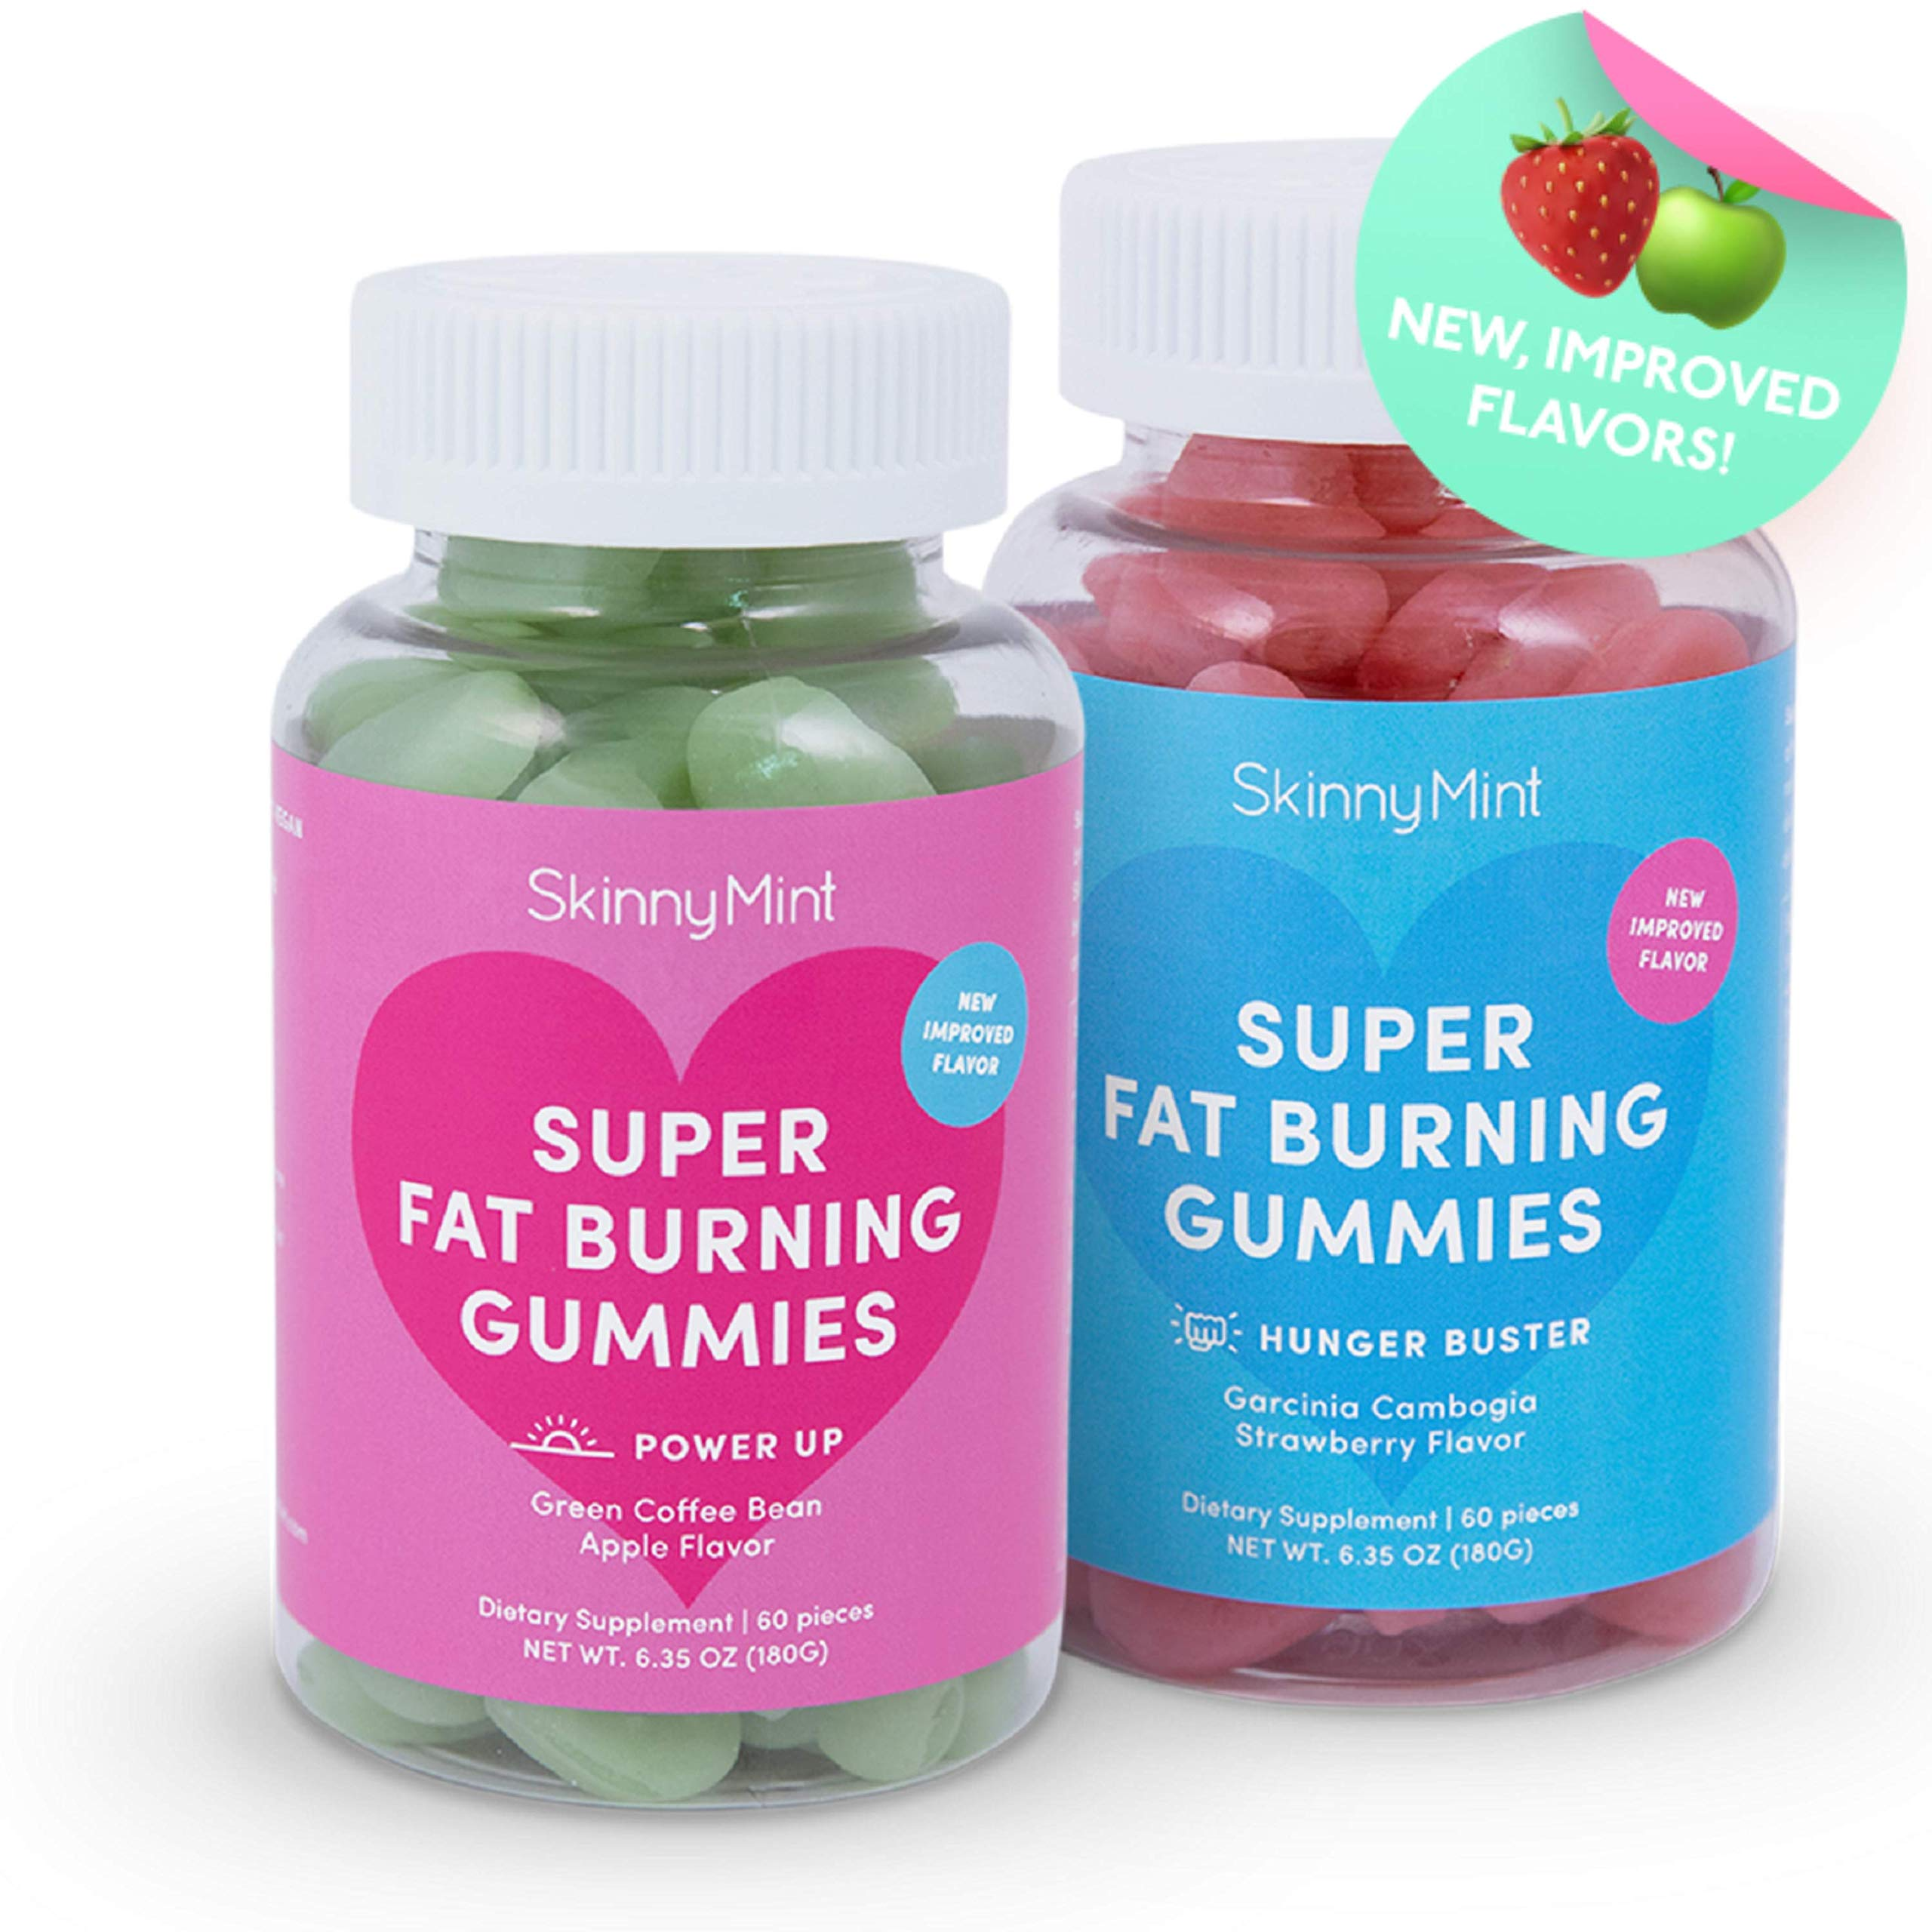 SkinnyMint Super Fat Burning Gummies (120 Gummies). Promotes Weight Loss. Powerful Fat Burner & Appetite Suppressant. Contains Garcinia Cambogia Extract.